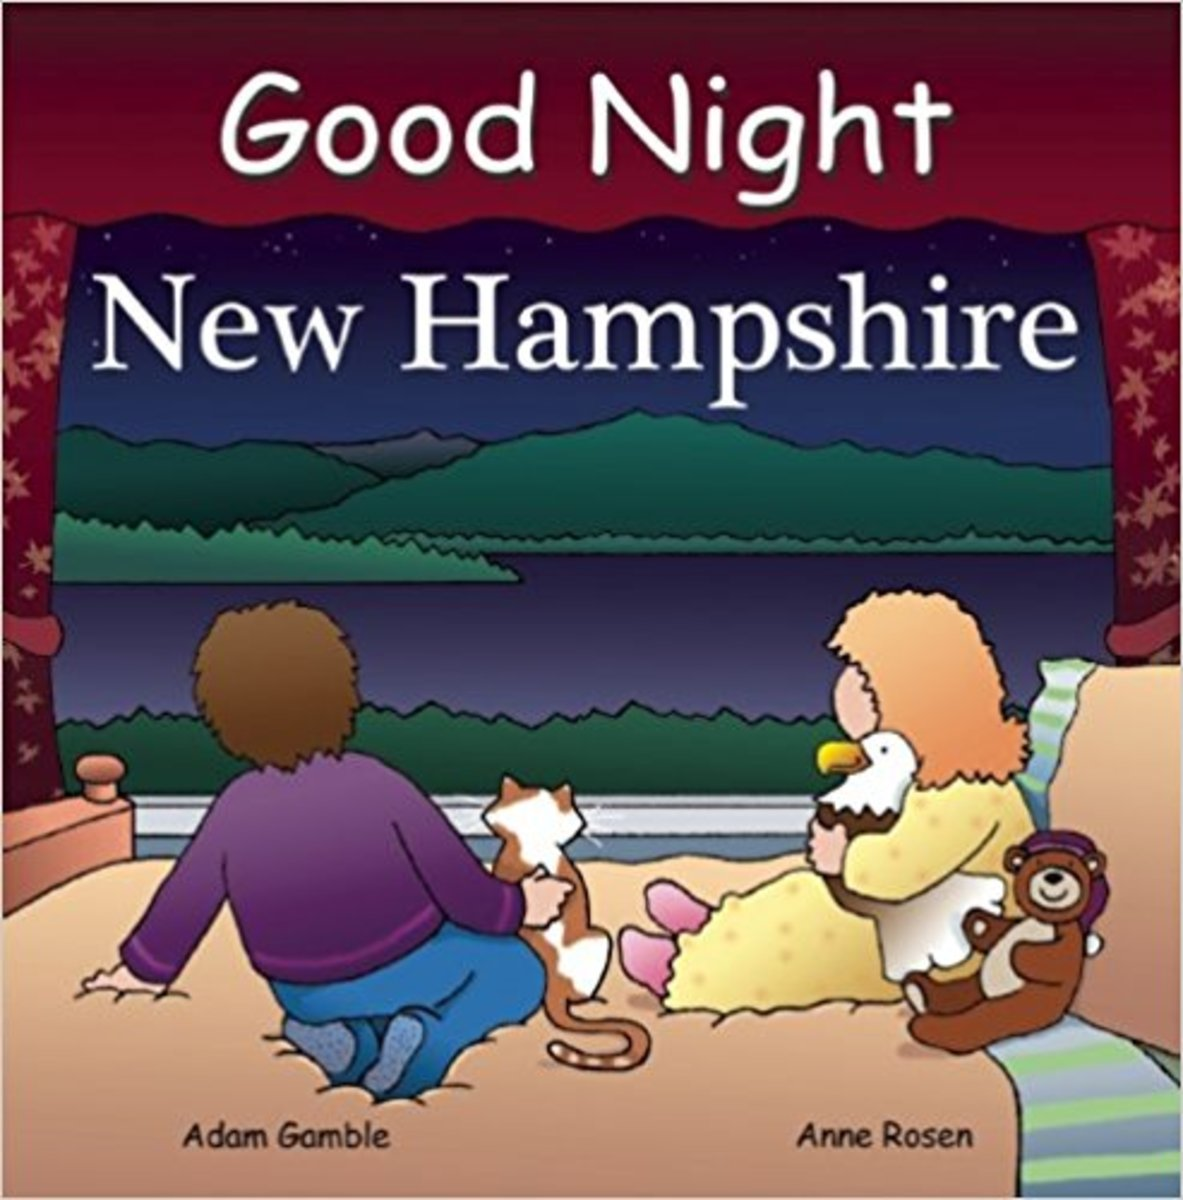 Good Night New Hampshire (Good Night Our World) Board book by Adam Gamble - Image is from amazon.com.